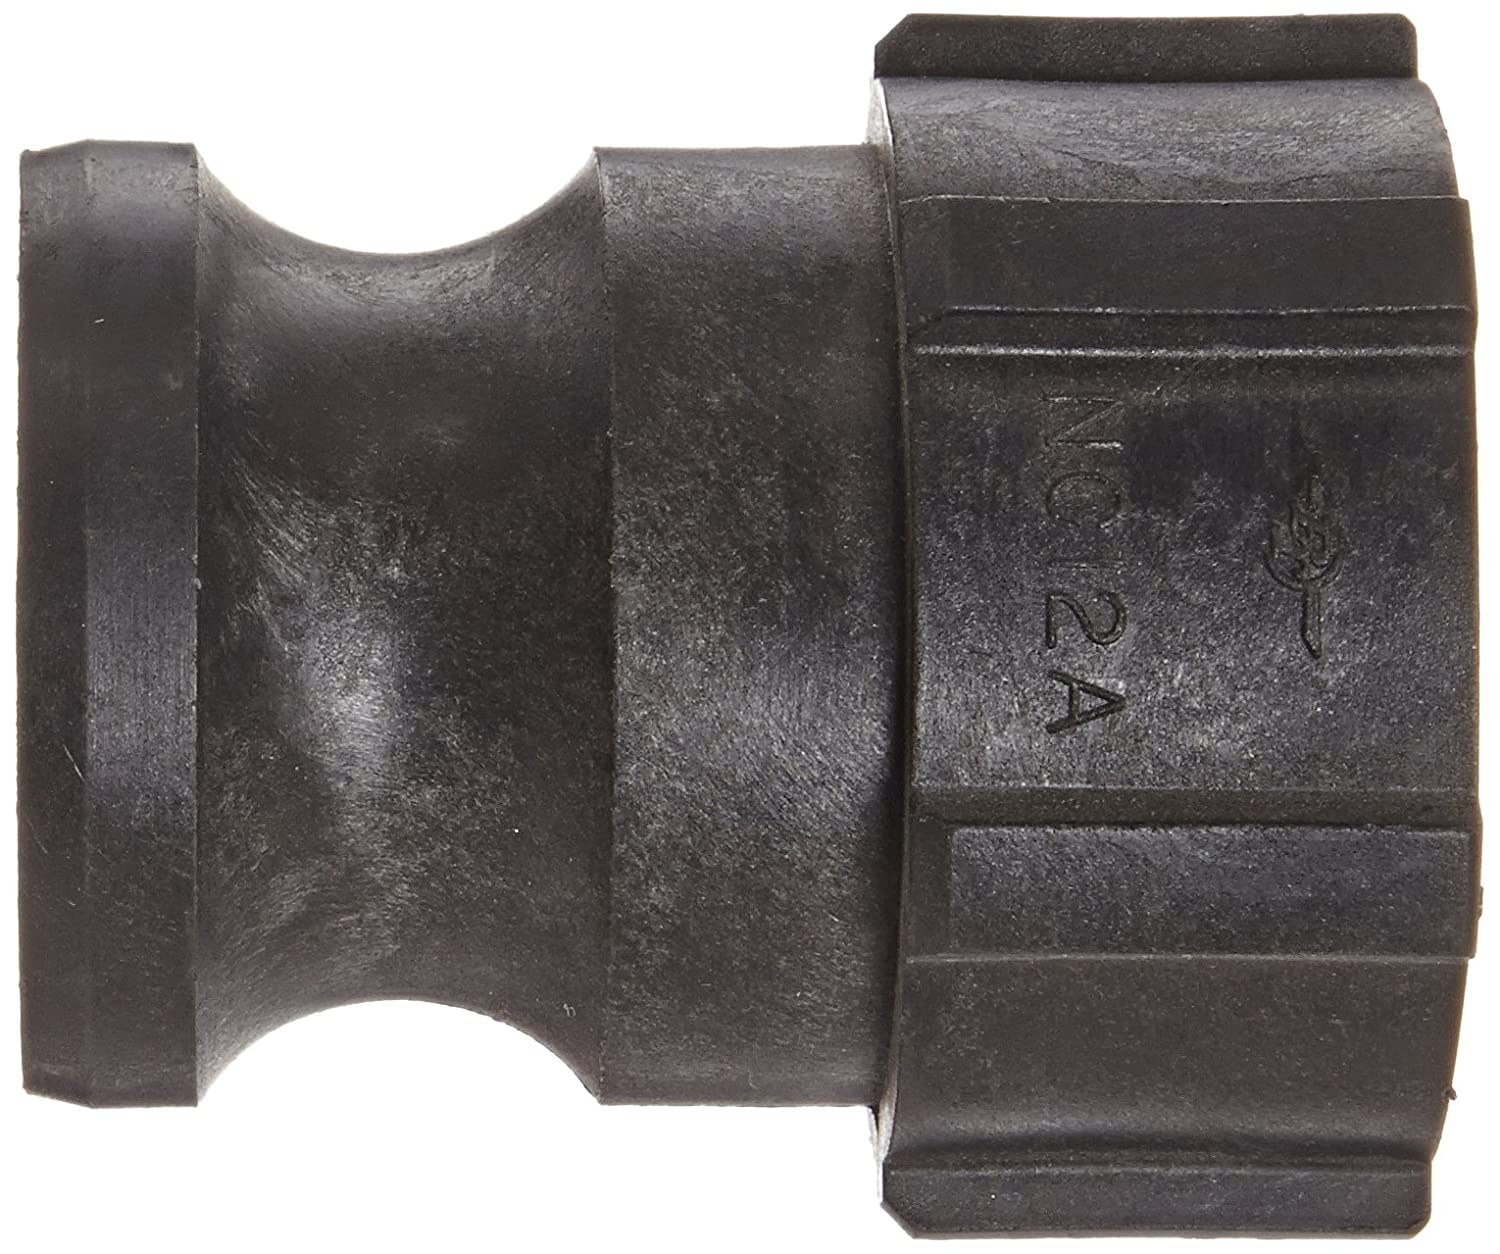 Poly A-Adapter 1 Adapter x NPT Female PT Coupling Basic Standard Series 10A Polypropylene Cam and Groove Hose Fitting